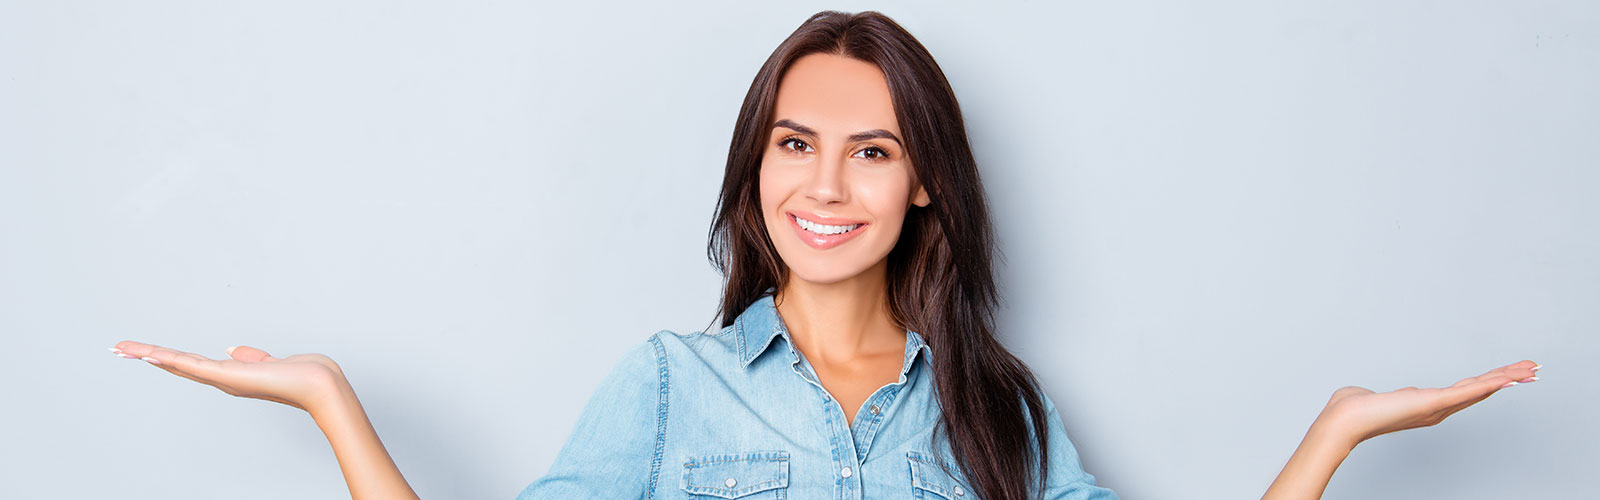 Clean skin without acne in Westlake area